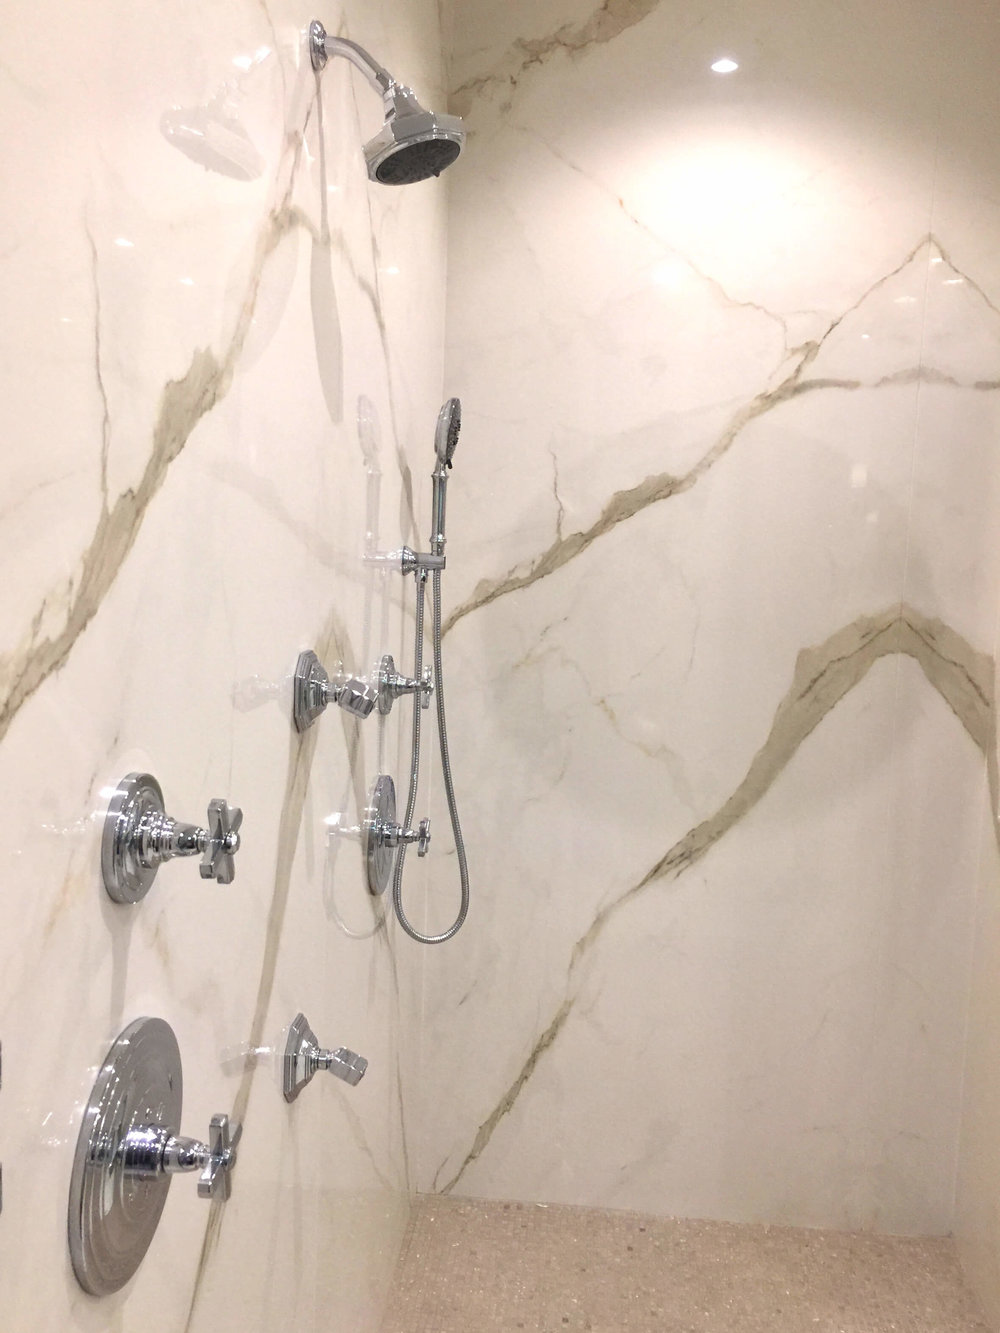 The master shower was lined with porcelain slabs, a great alternative to tile. No grout!The New American Remodel - Orlando, KBIS2018 #masterbathroom #bath #bathroomdesign #showerstall